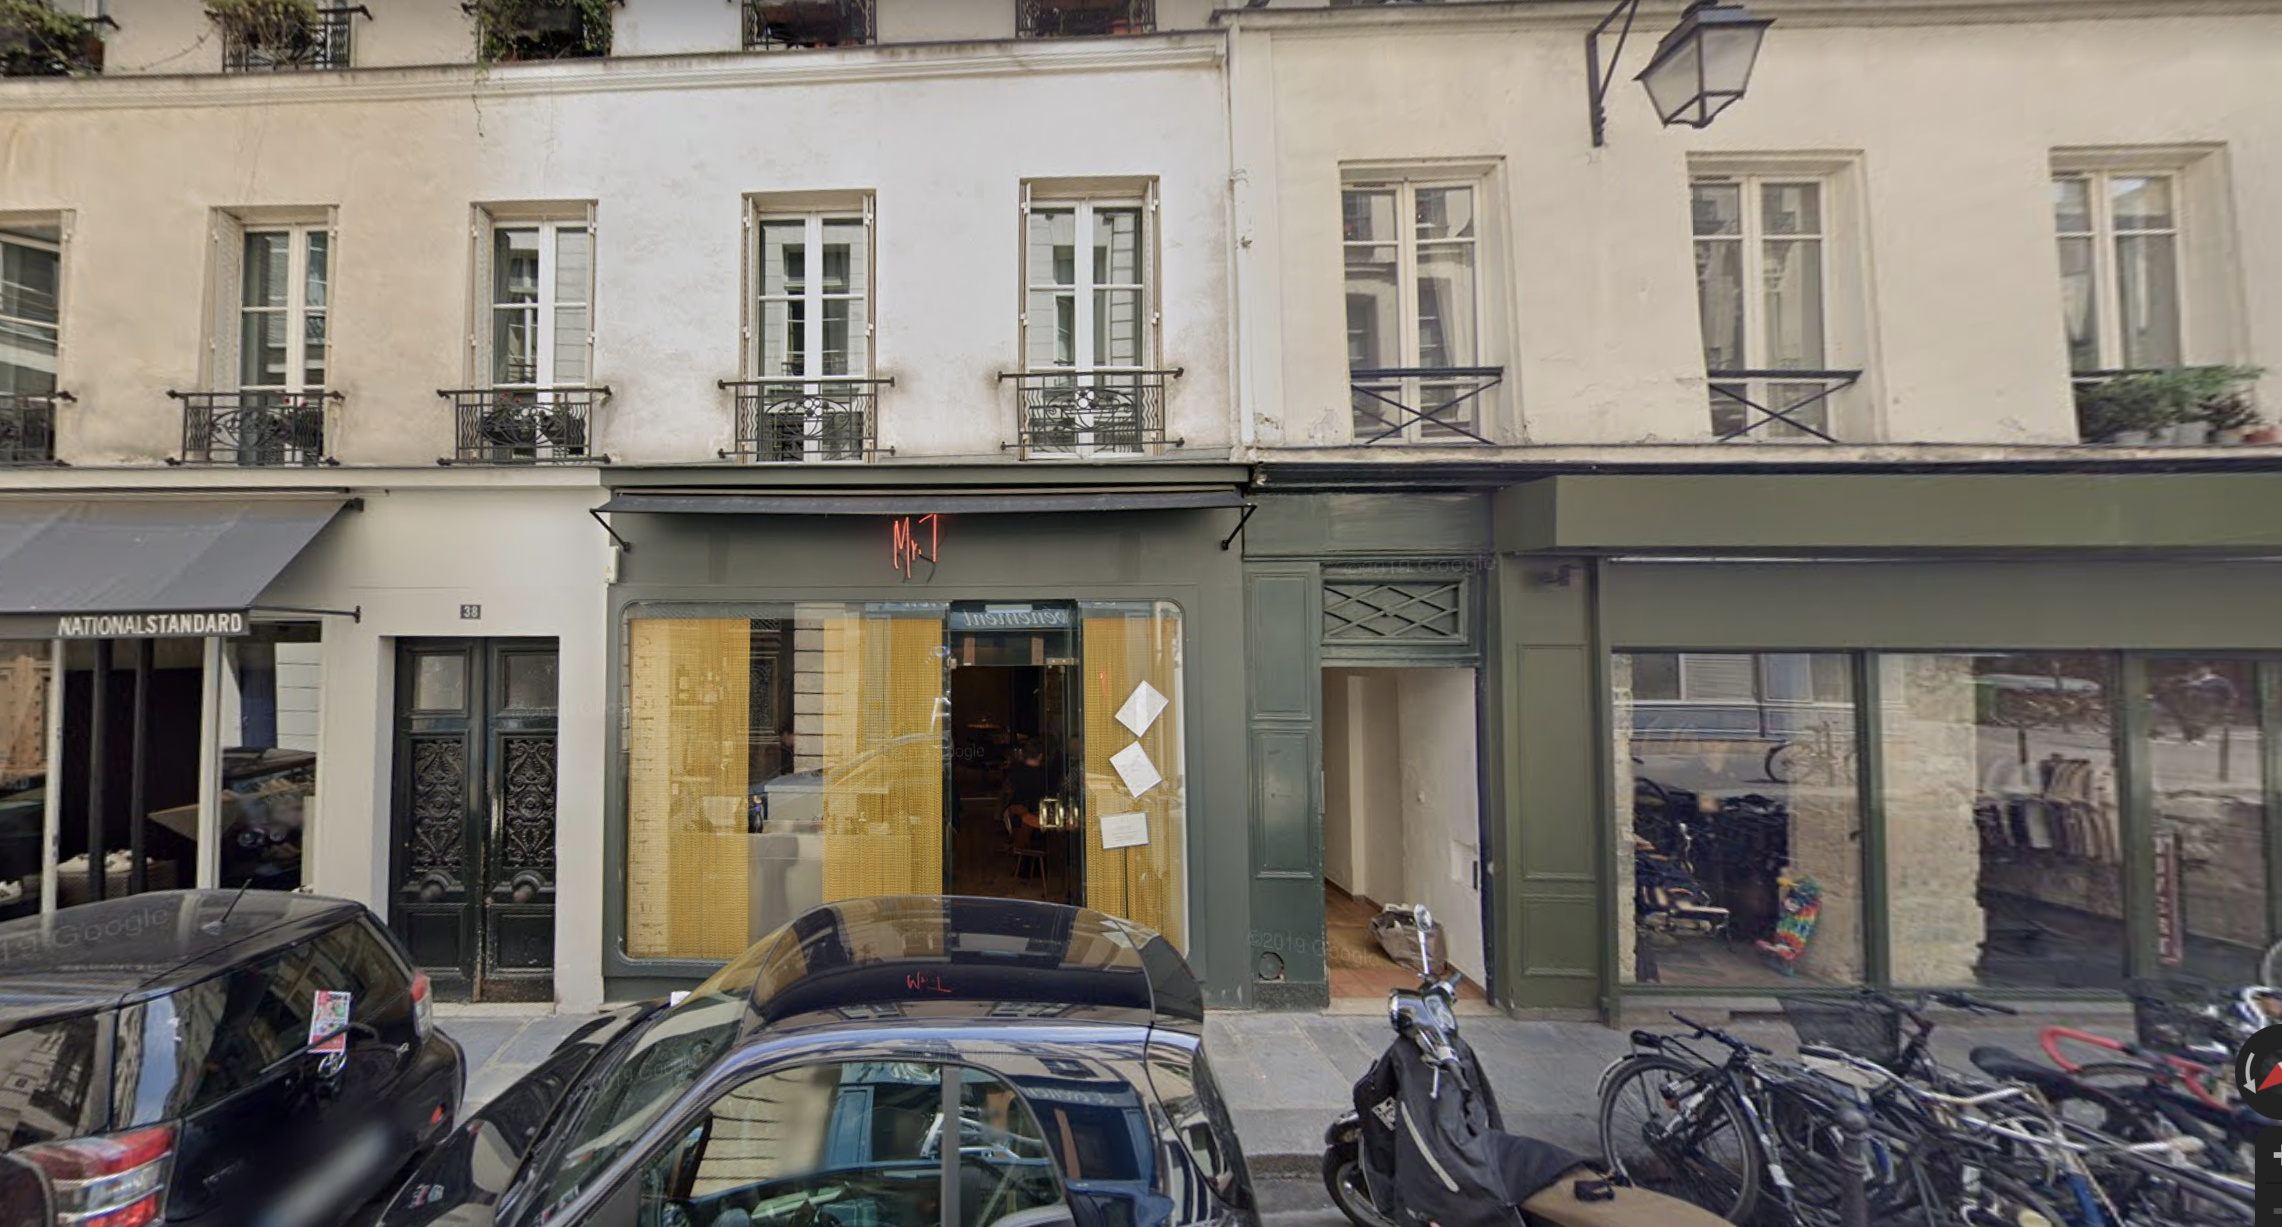 A street view image of a closed Parisian restaurant at daytime.